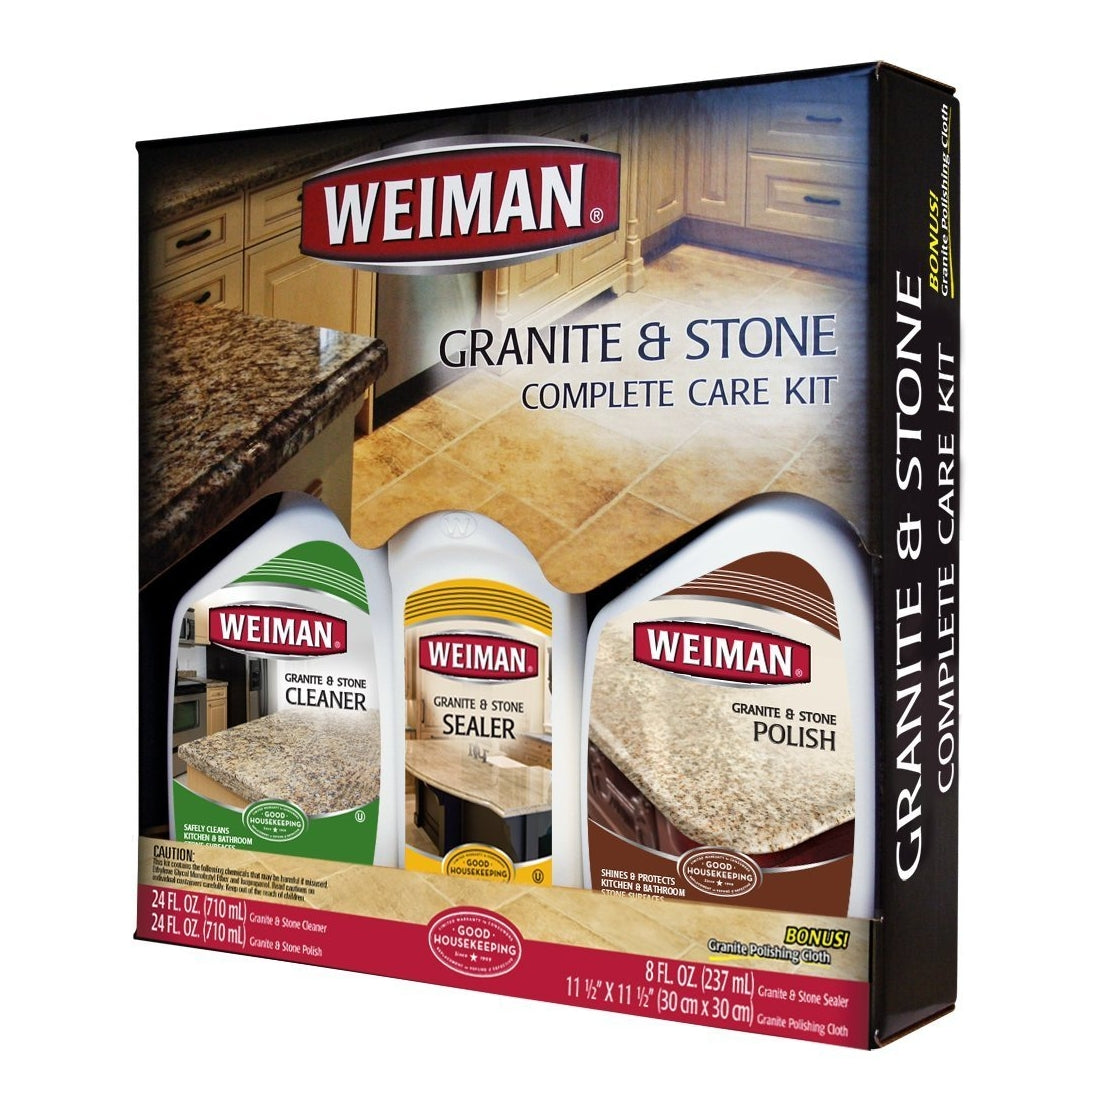 Weiman Granite & Stone Complete Care Kit